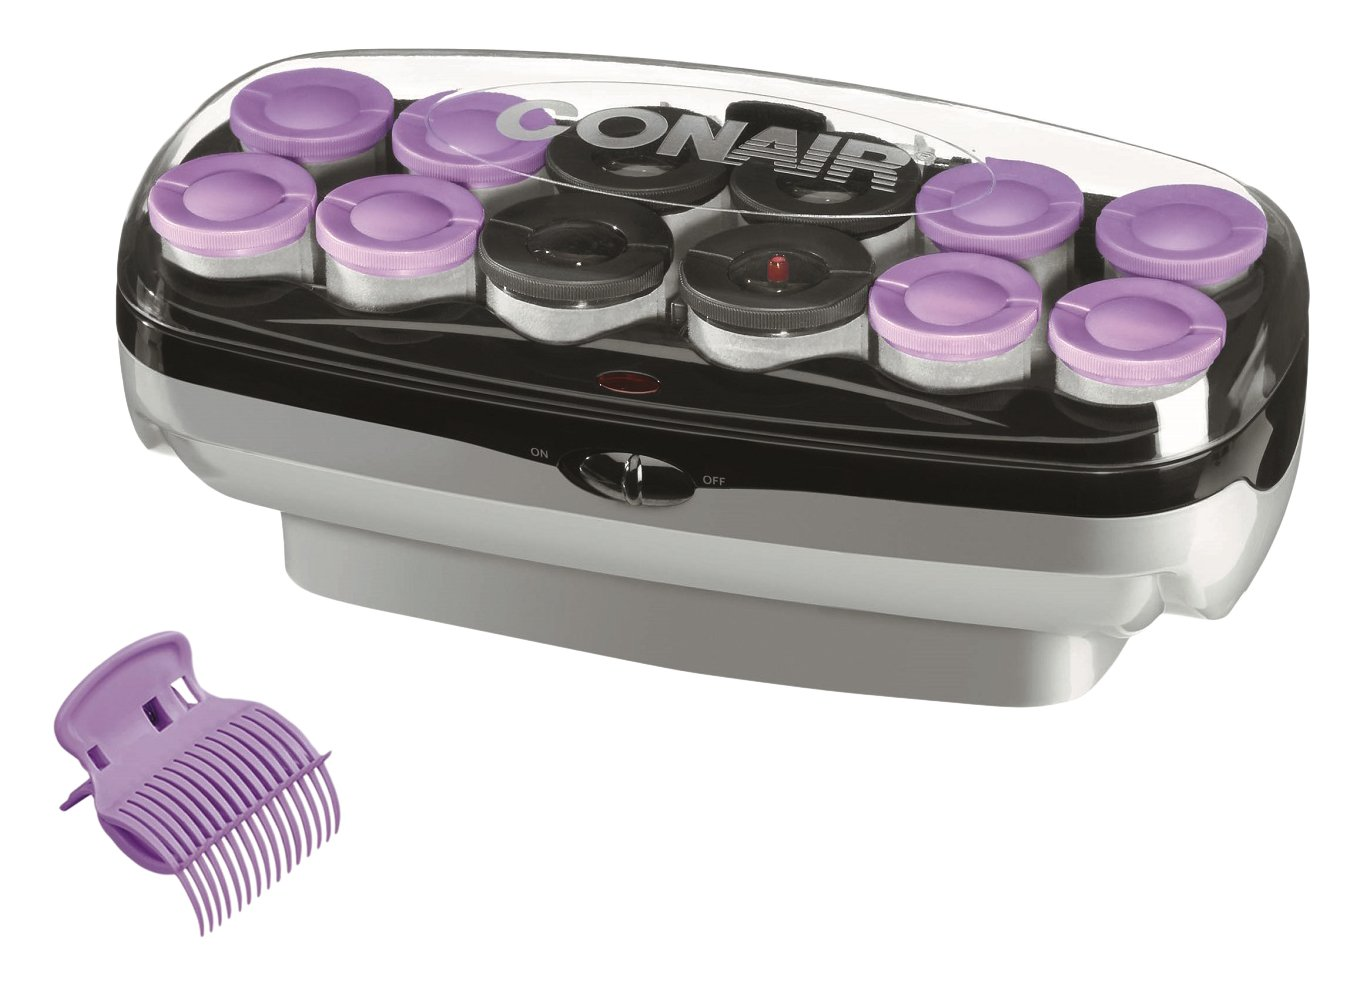 Conair Xtreme Instant Heat Jumbo And Super Jumbo Hot Rollers; Bonus Super Clips Included - Amazon Exclusive